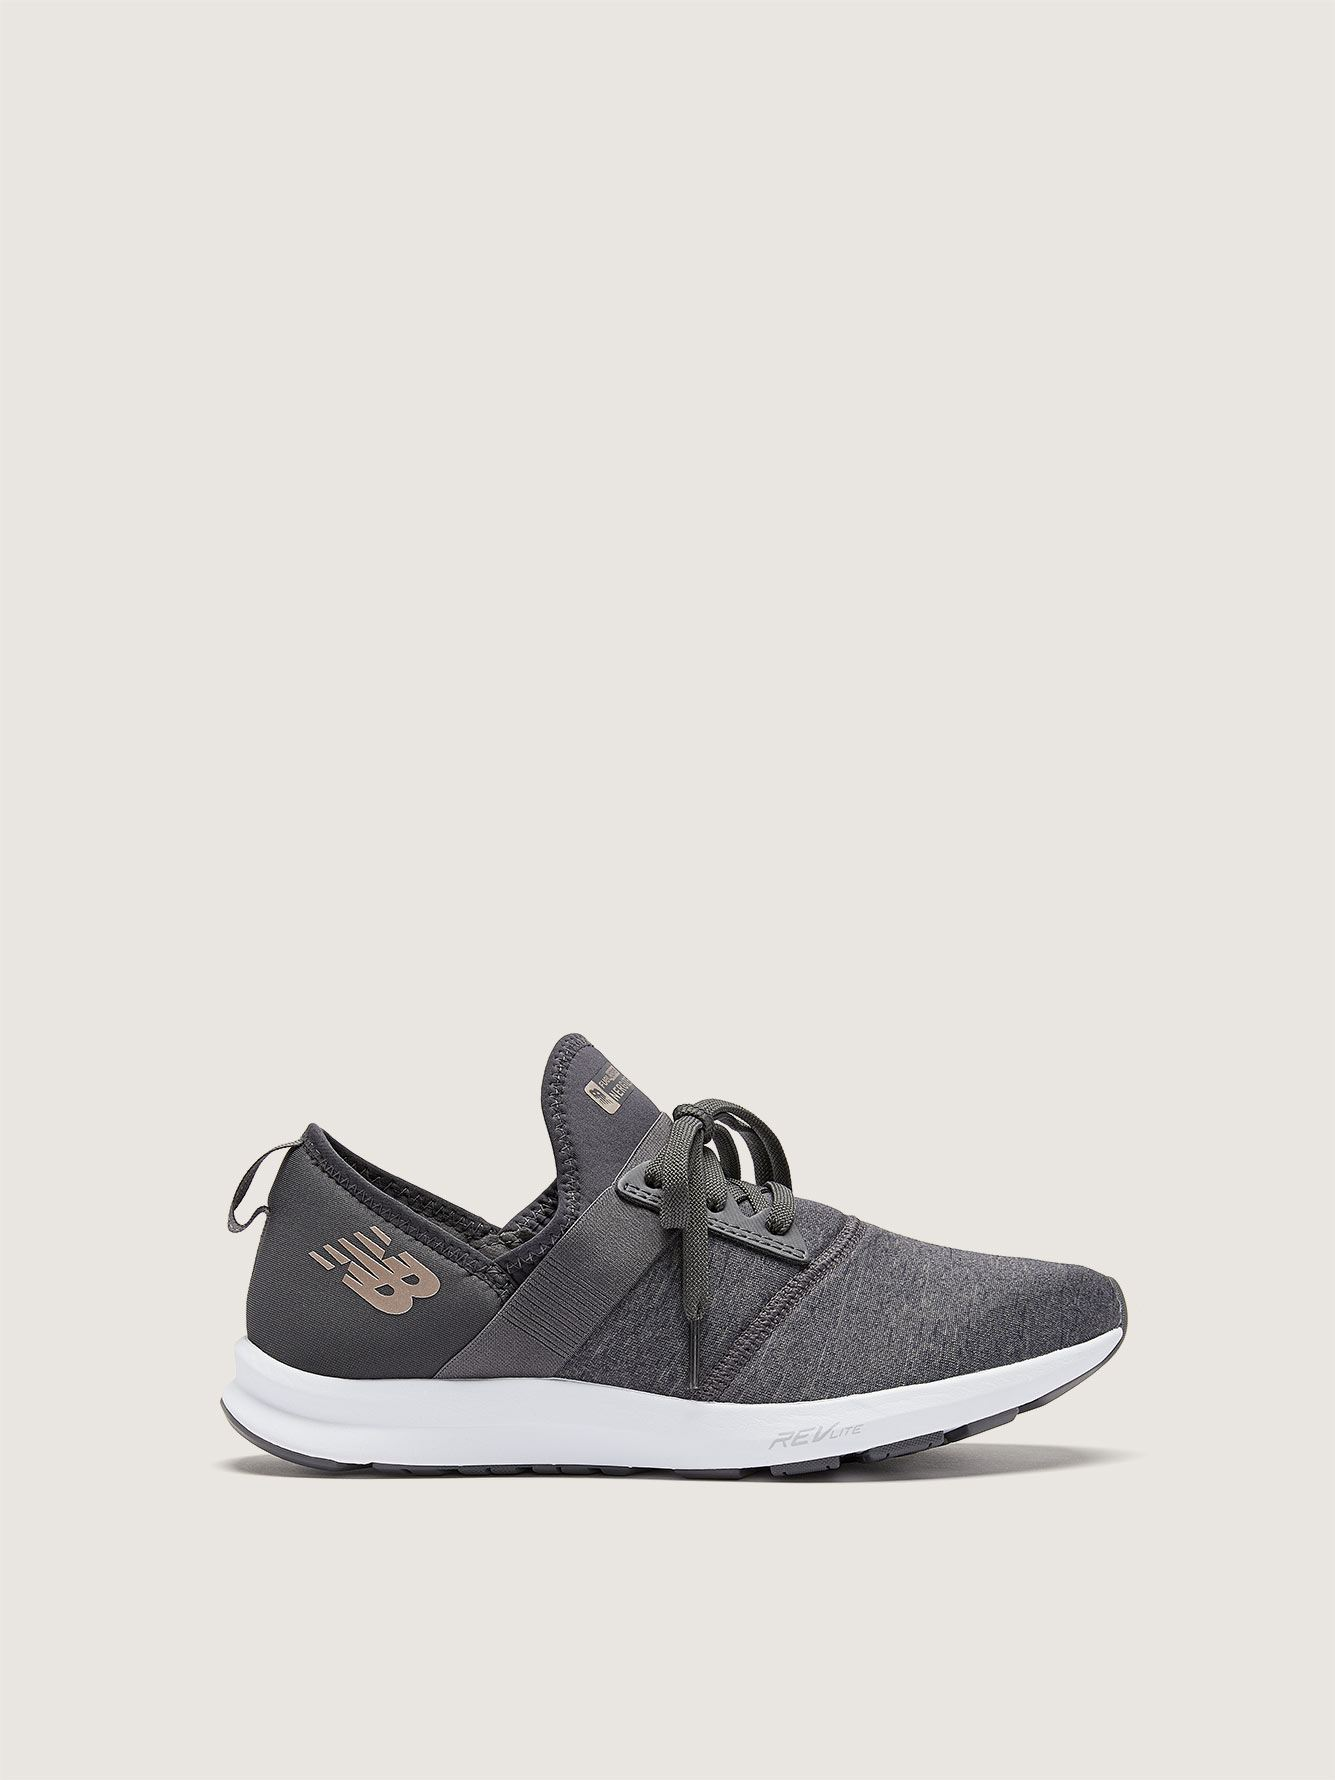 Chaussures sport Fuelcore Nergize, pieds larges - New Balance